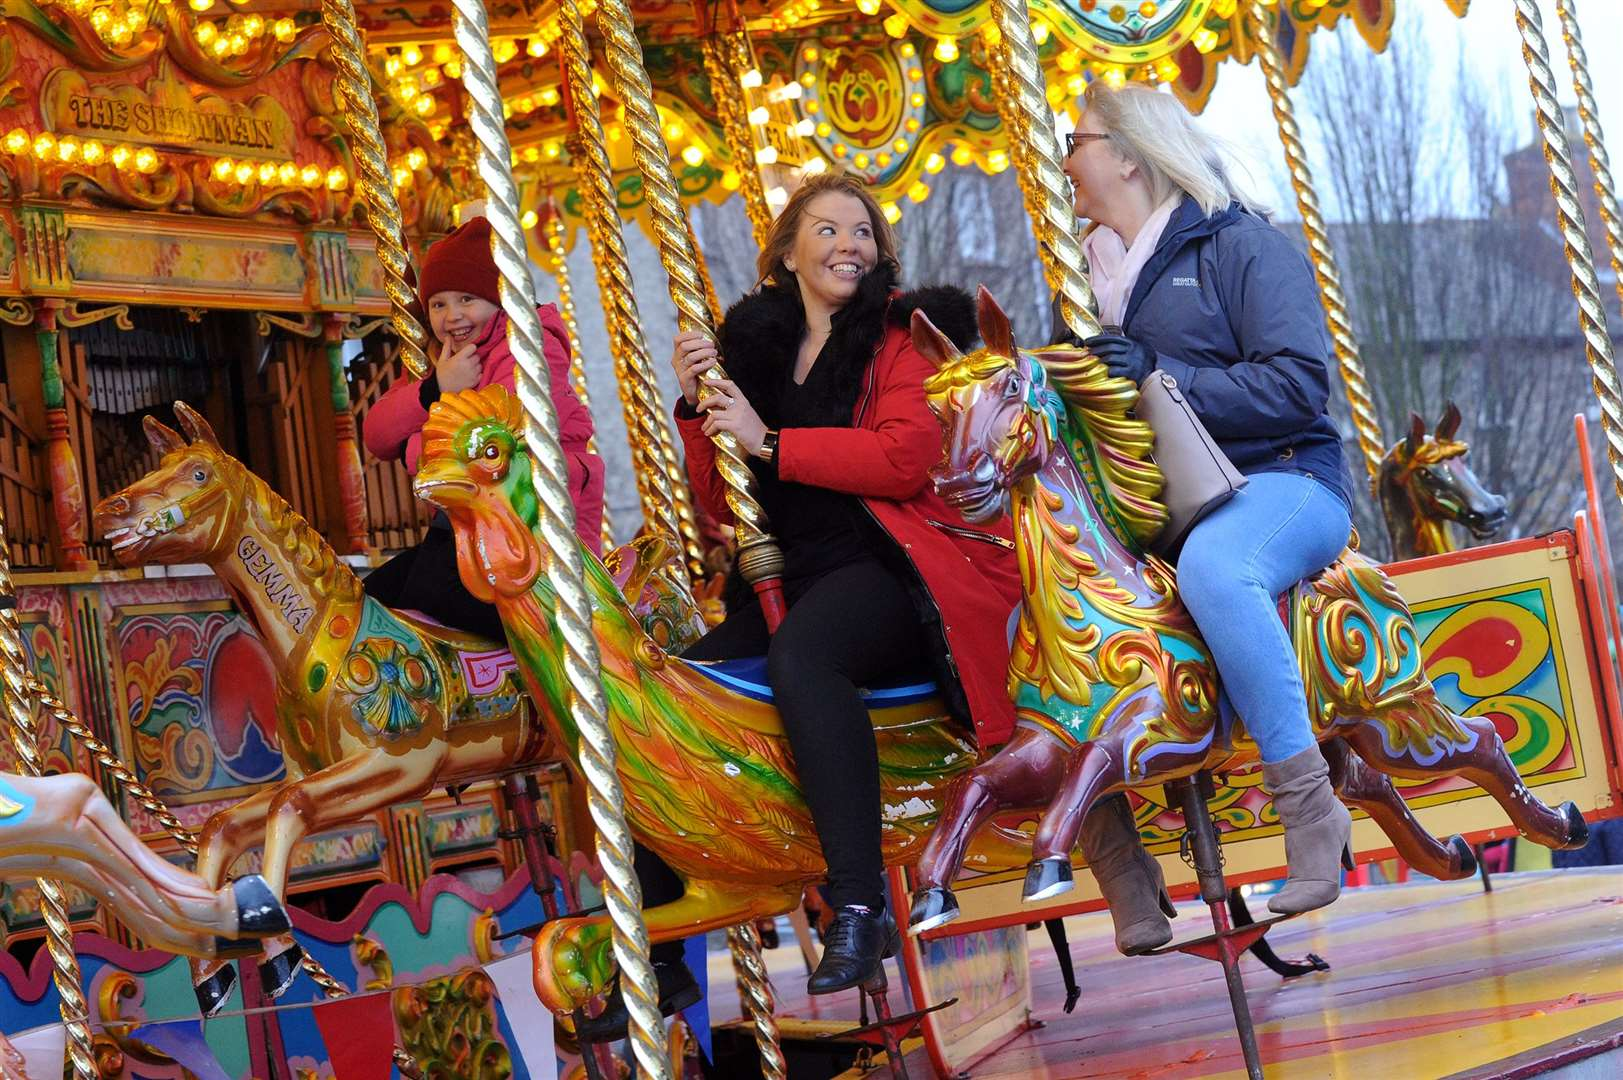 Bury St Edmunds Christmas Fayre 2018..Pictured: Suzanne Barnes, Holle Booth and Baylee Millington-Barnes on the Carousel ...PICTURE: Mecha Morton. (21101412)